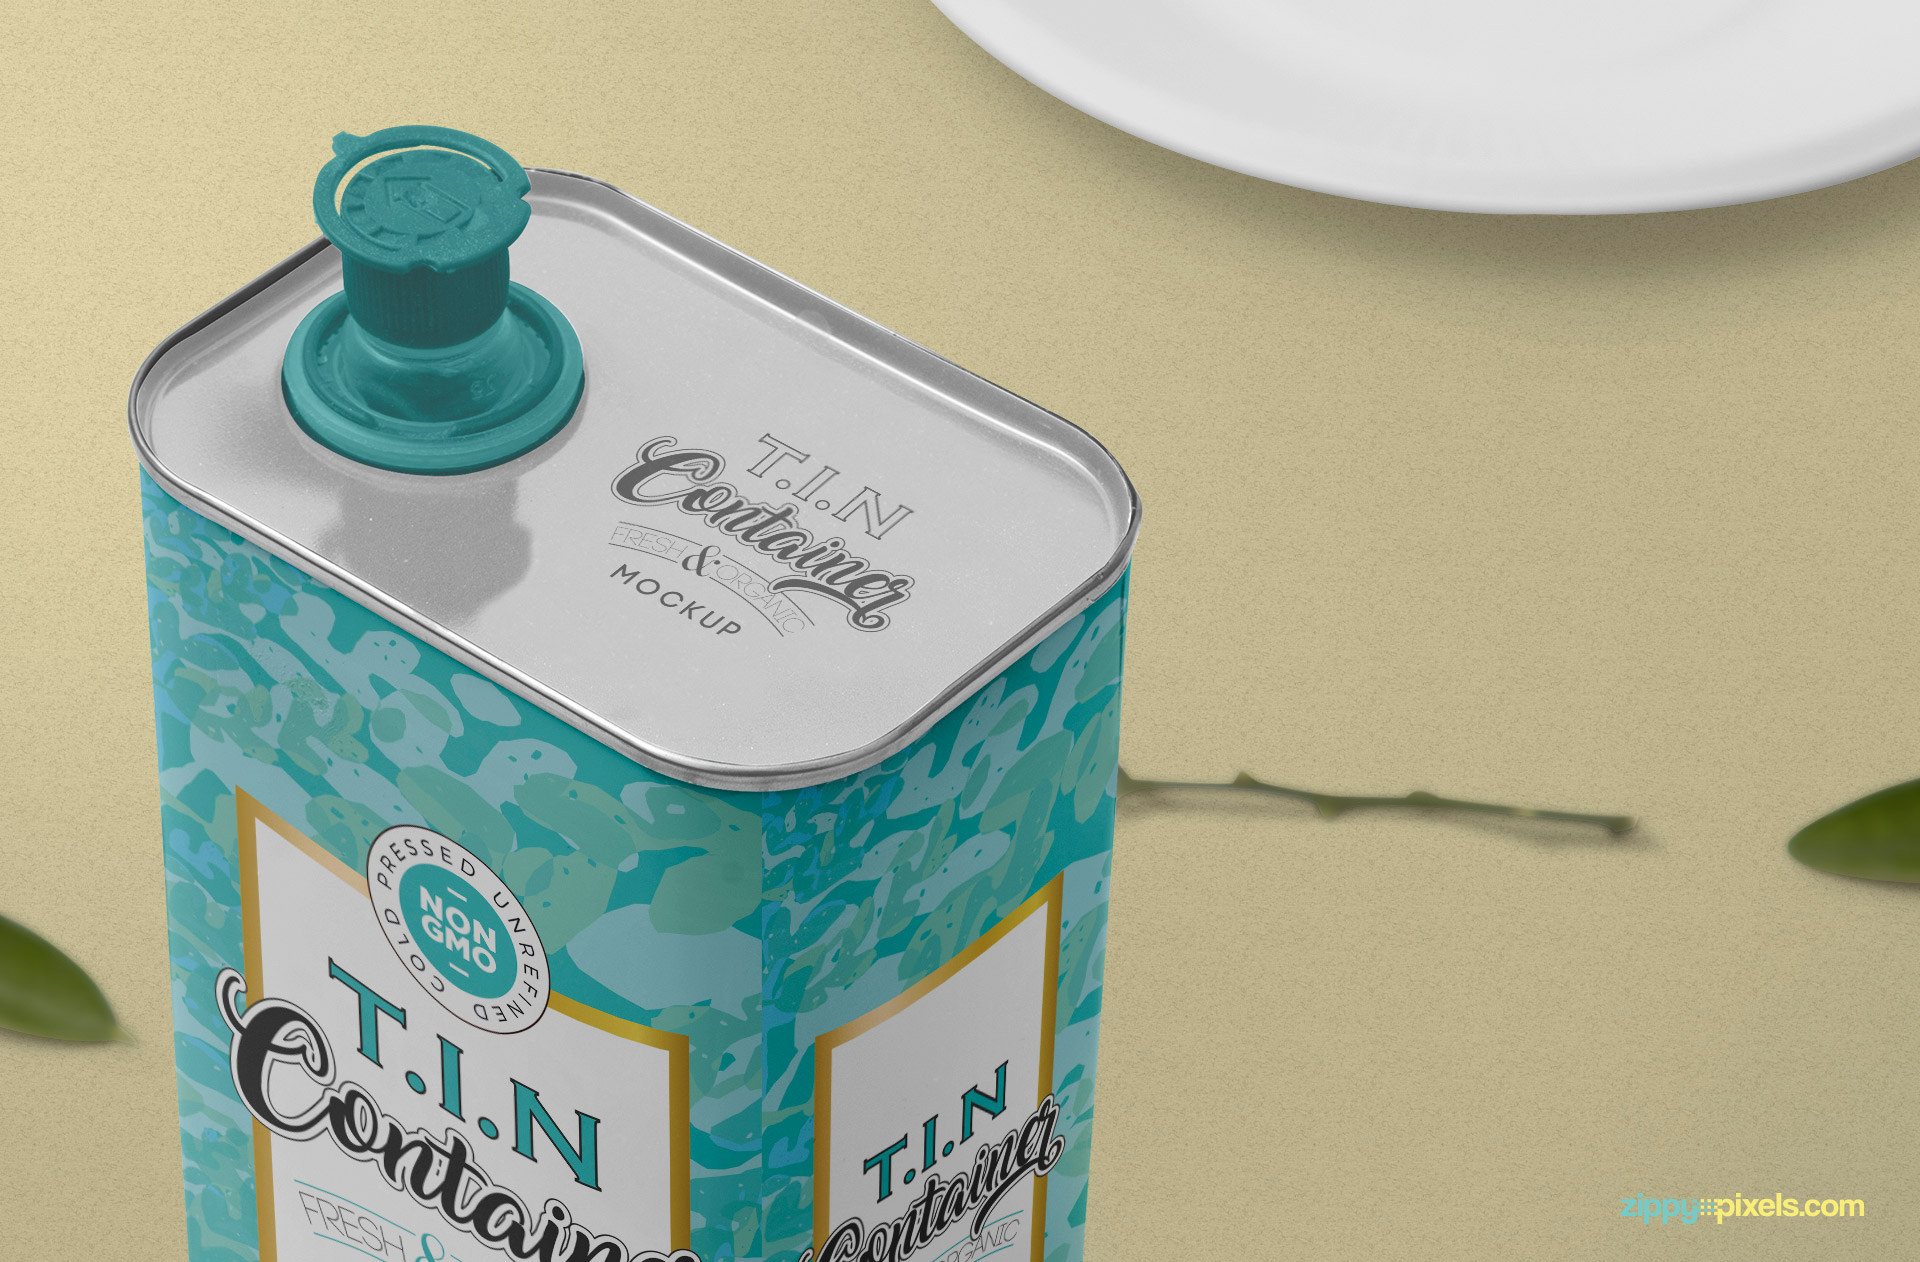 Tin can cap with color option.